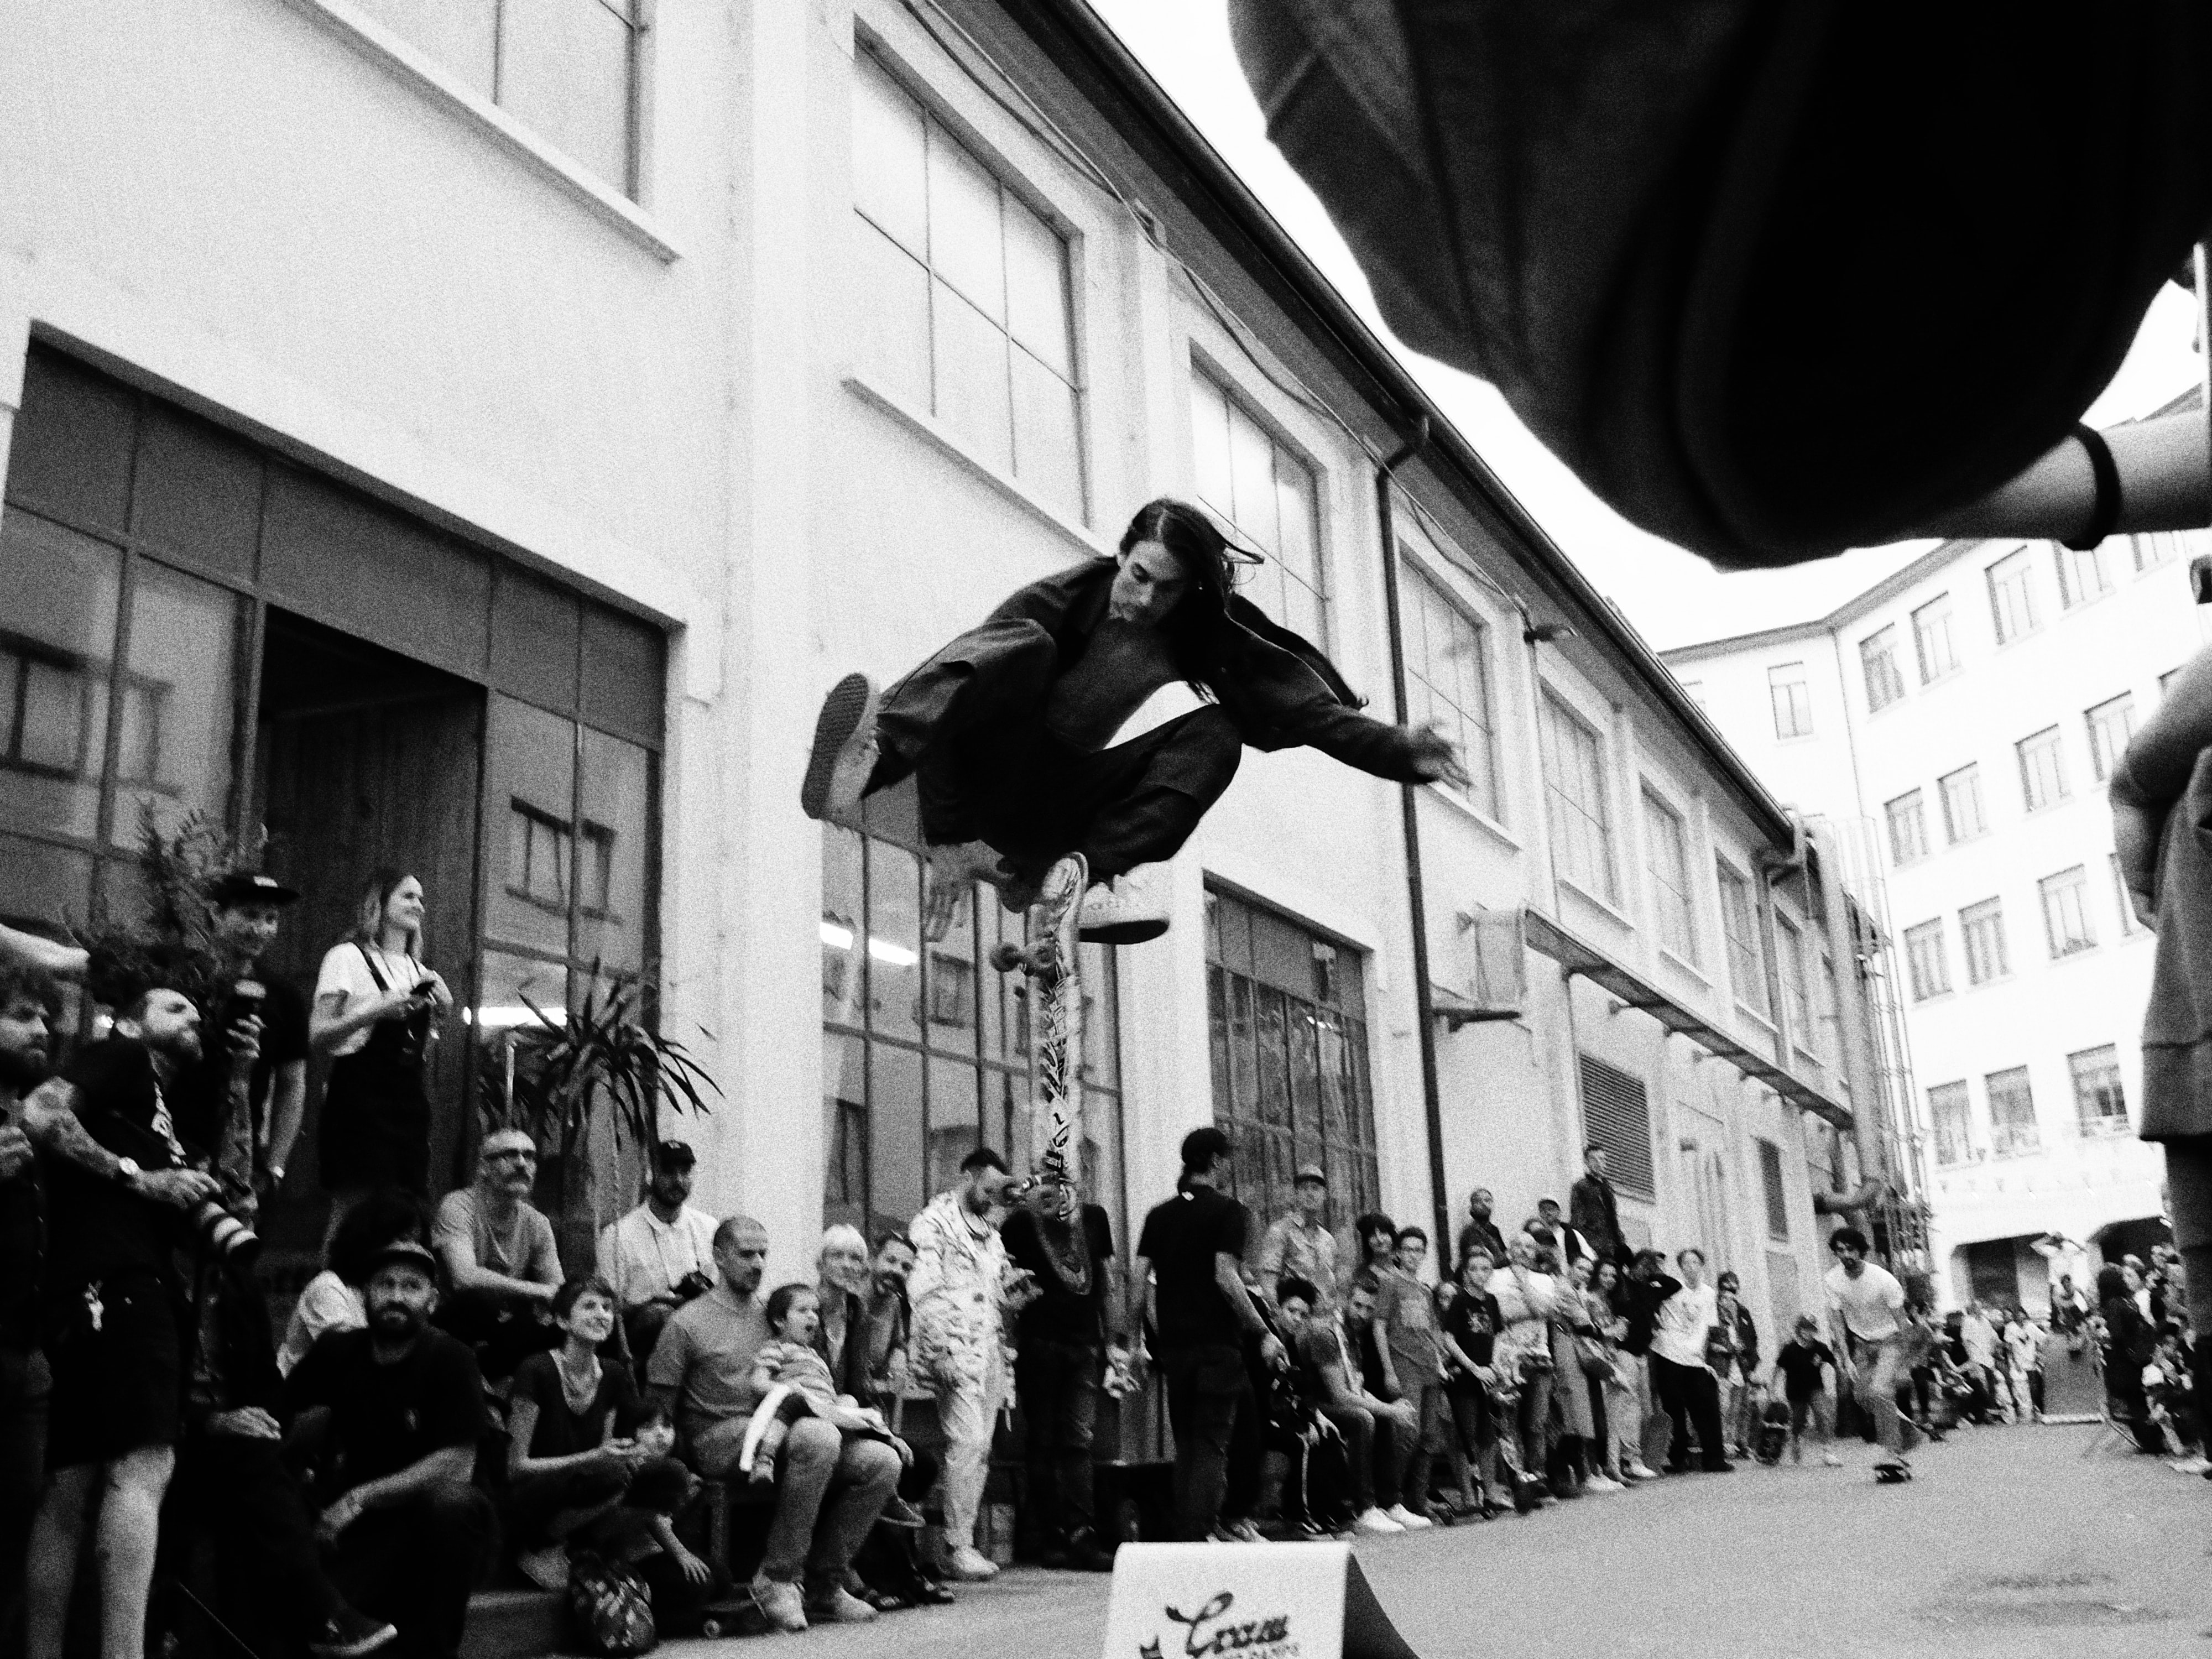 greyscale photo of man jumping on street